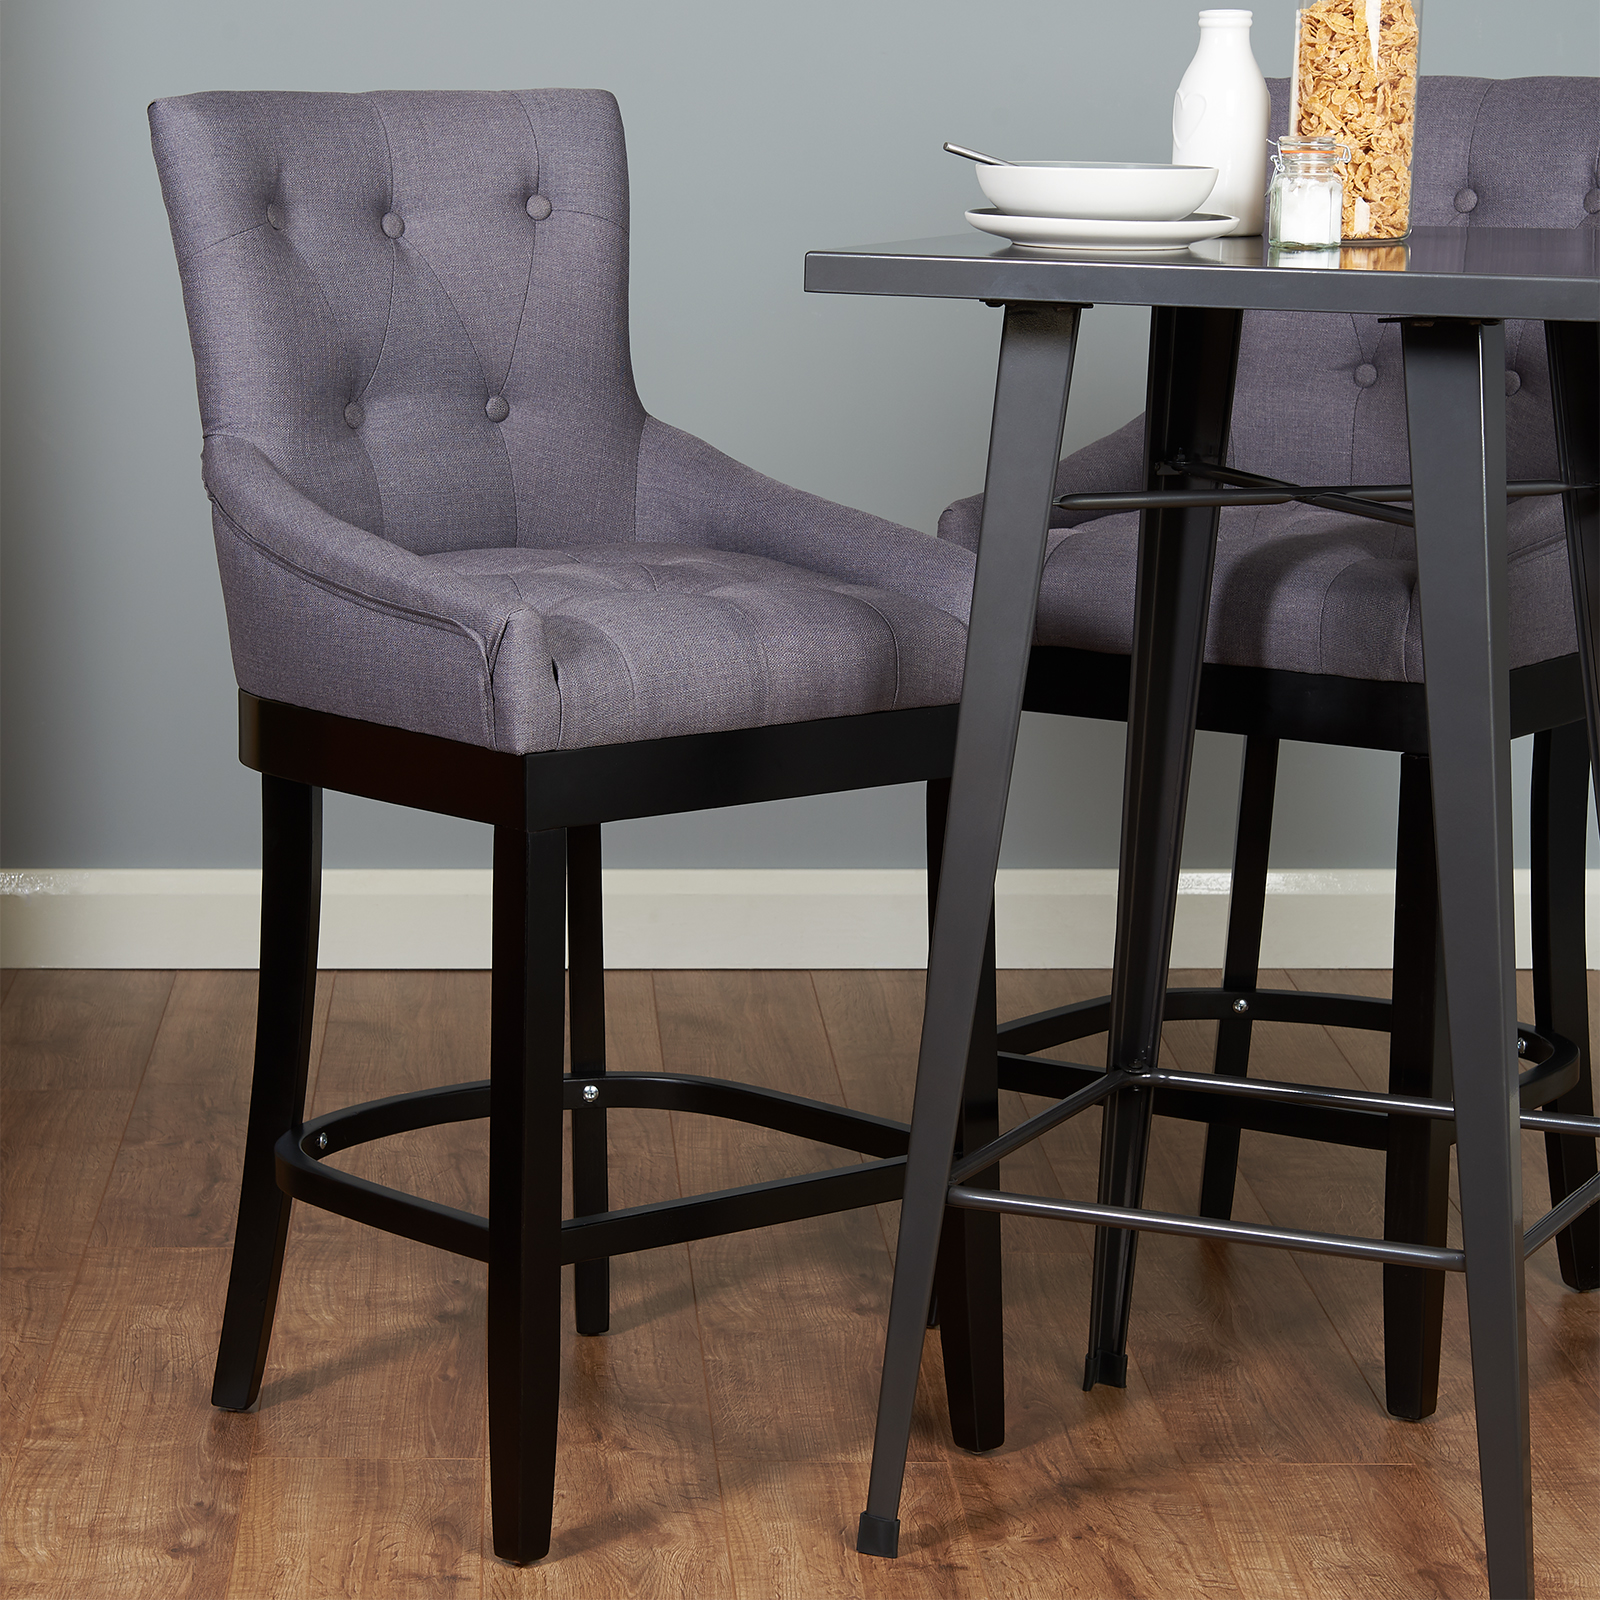 Black Kitchen Bar Stools Uk: Pair Of Dark Grey Bar Stools Kitchen Breakfast Stool Seat